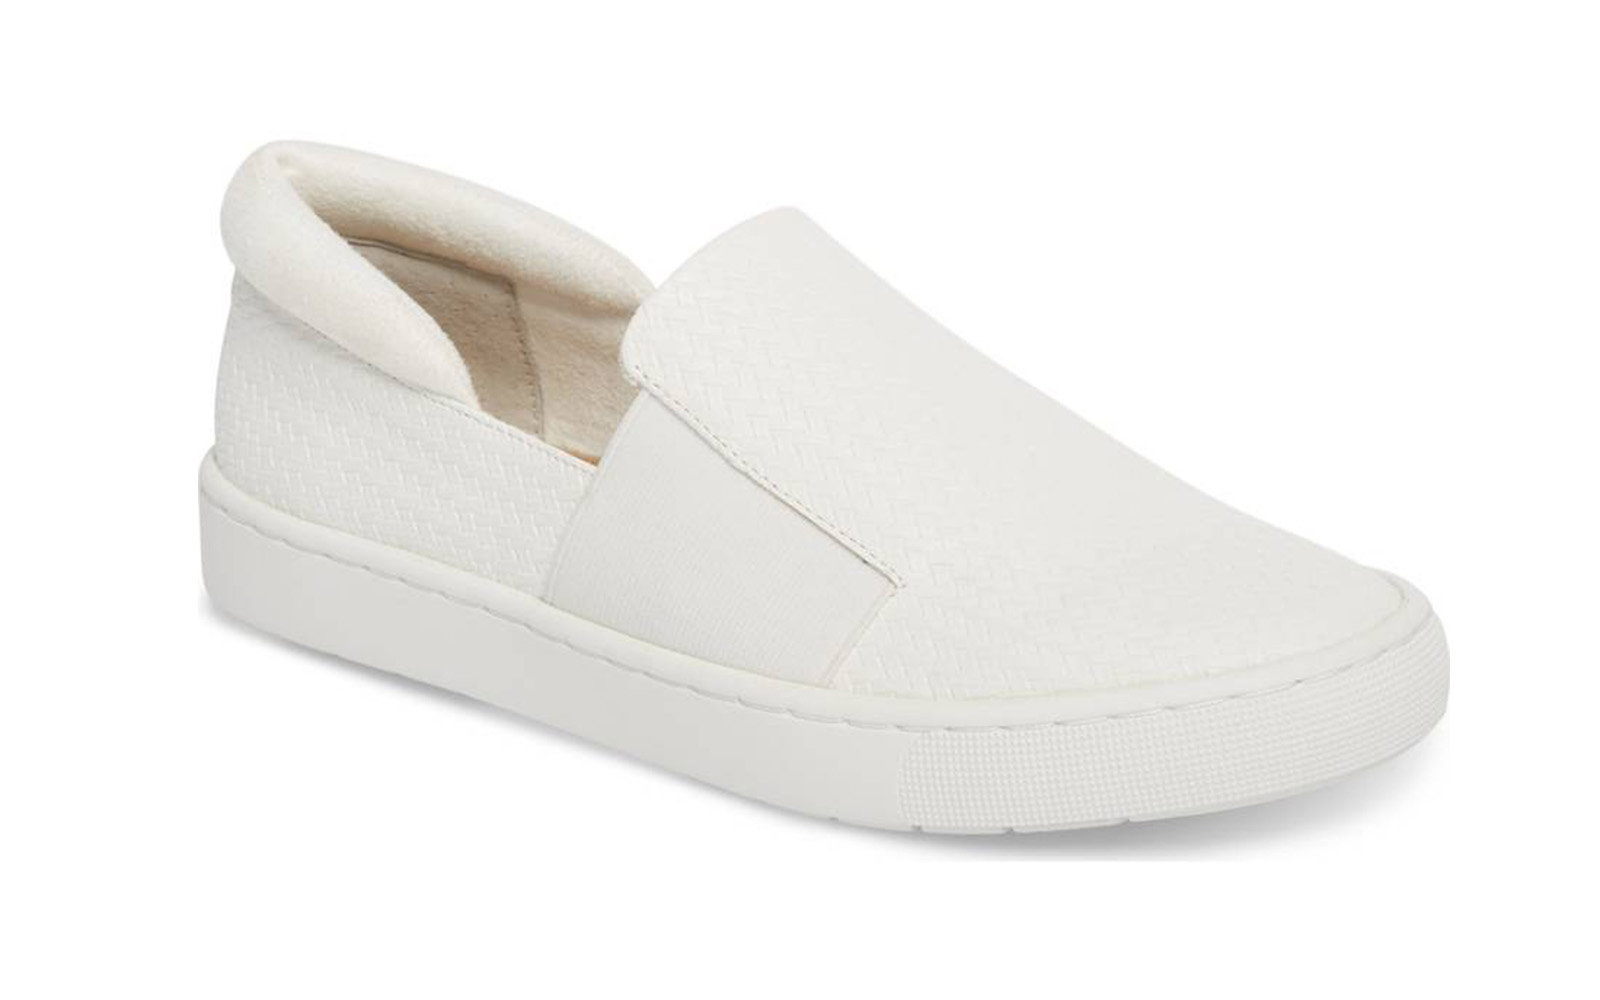 27f7364da2137 10 Super-comfy Slip-on Sneakers to Wear This Spring